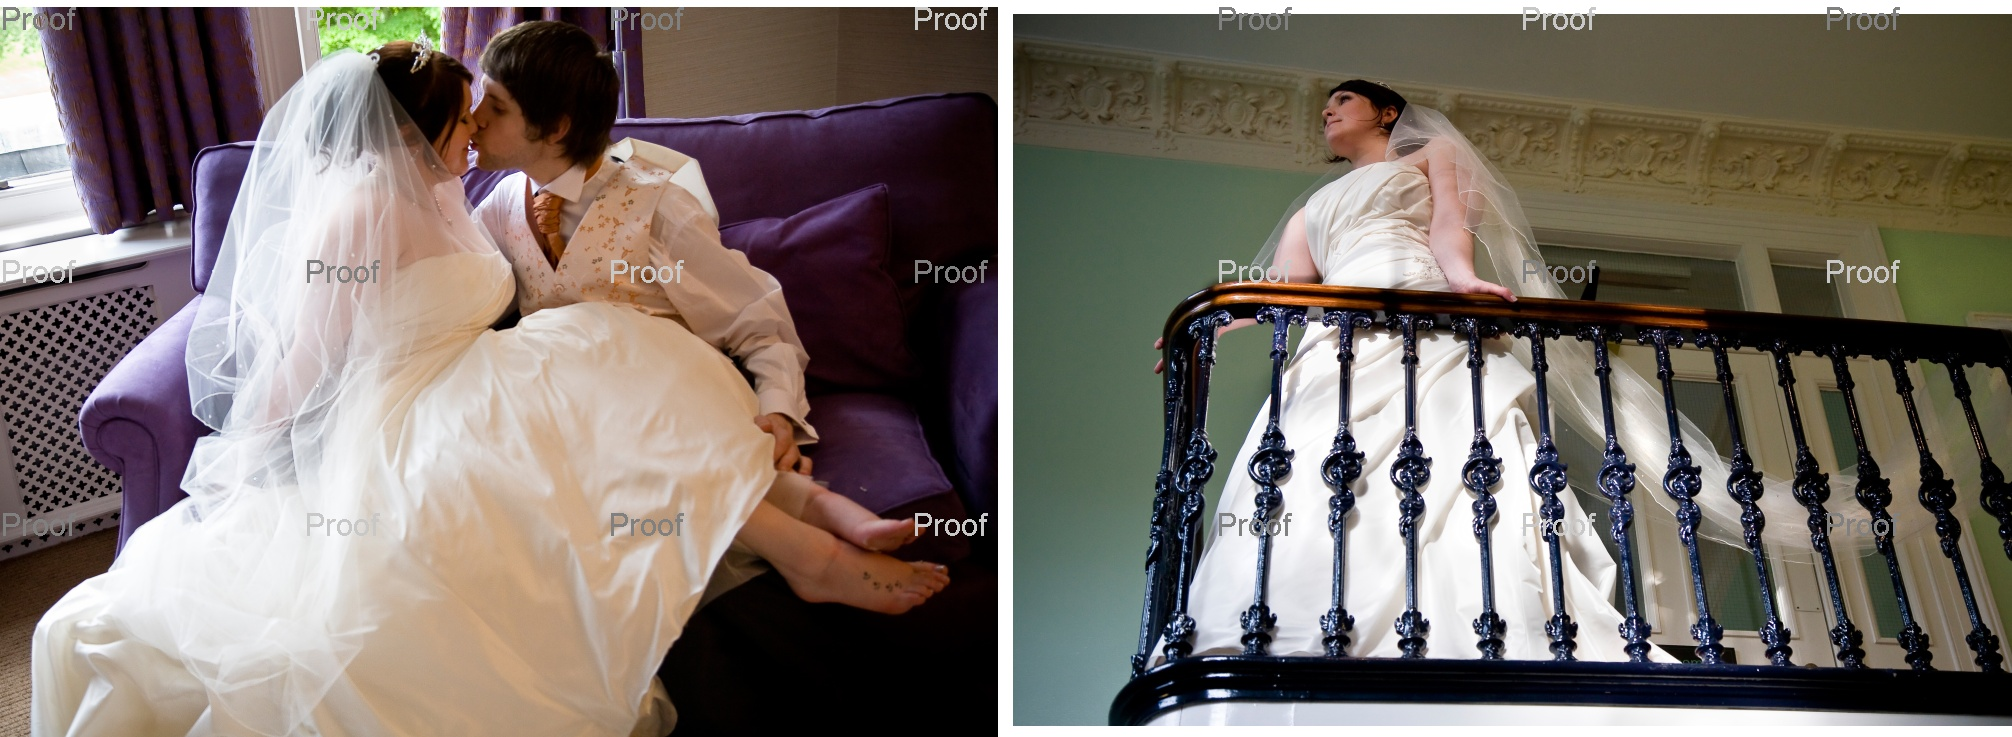 pages 70-71 of wedding storybook album with Louise and Martin's wedding photography in Manchester